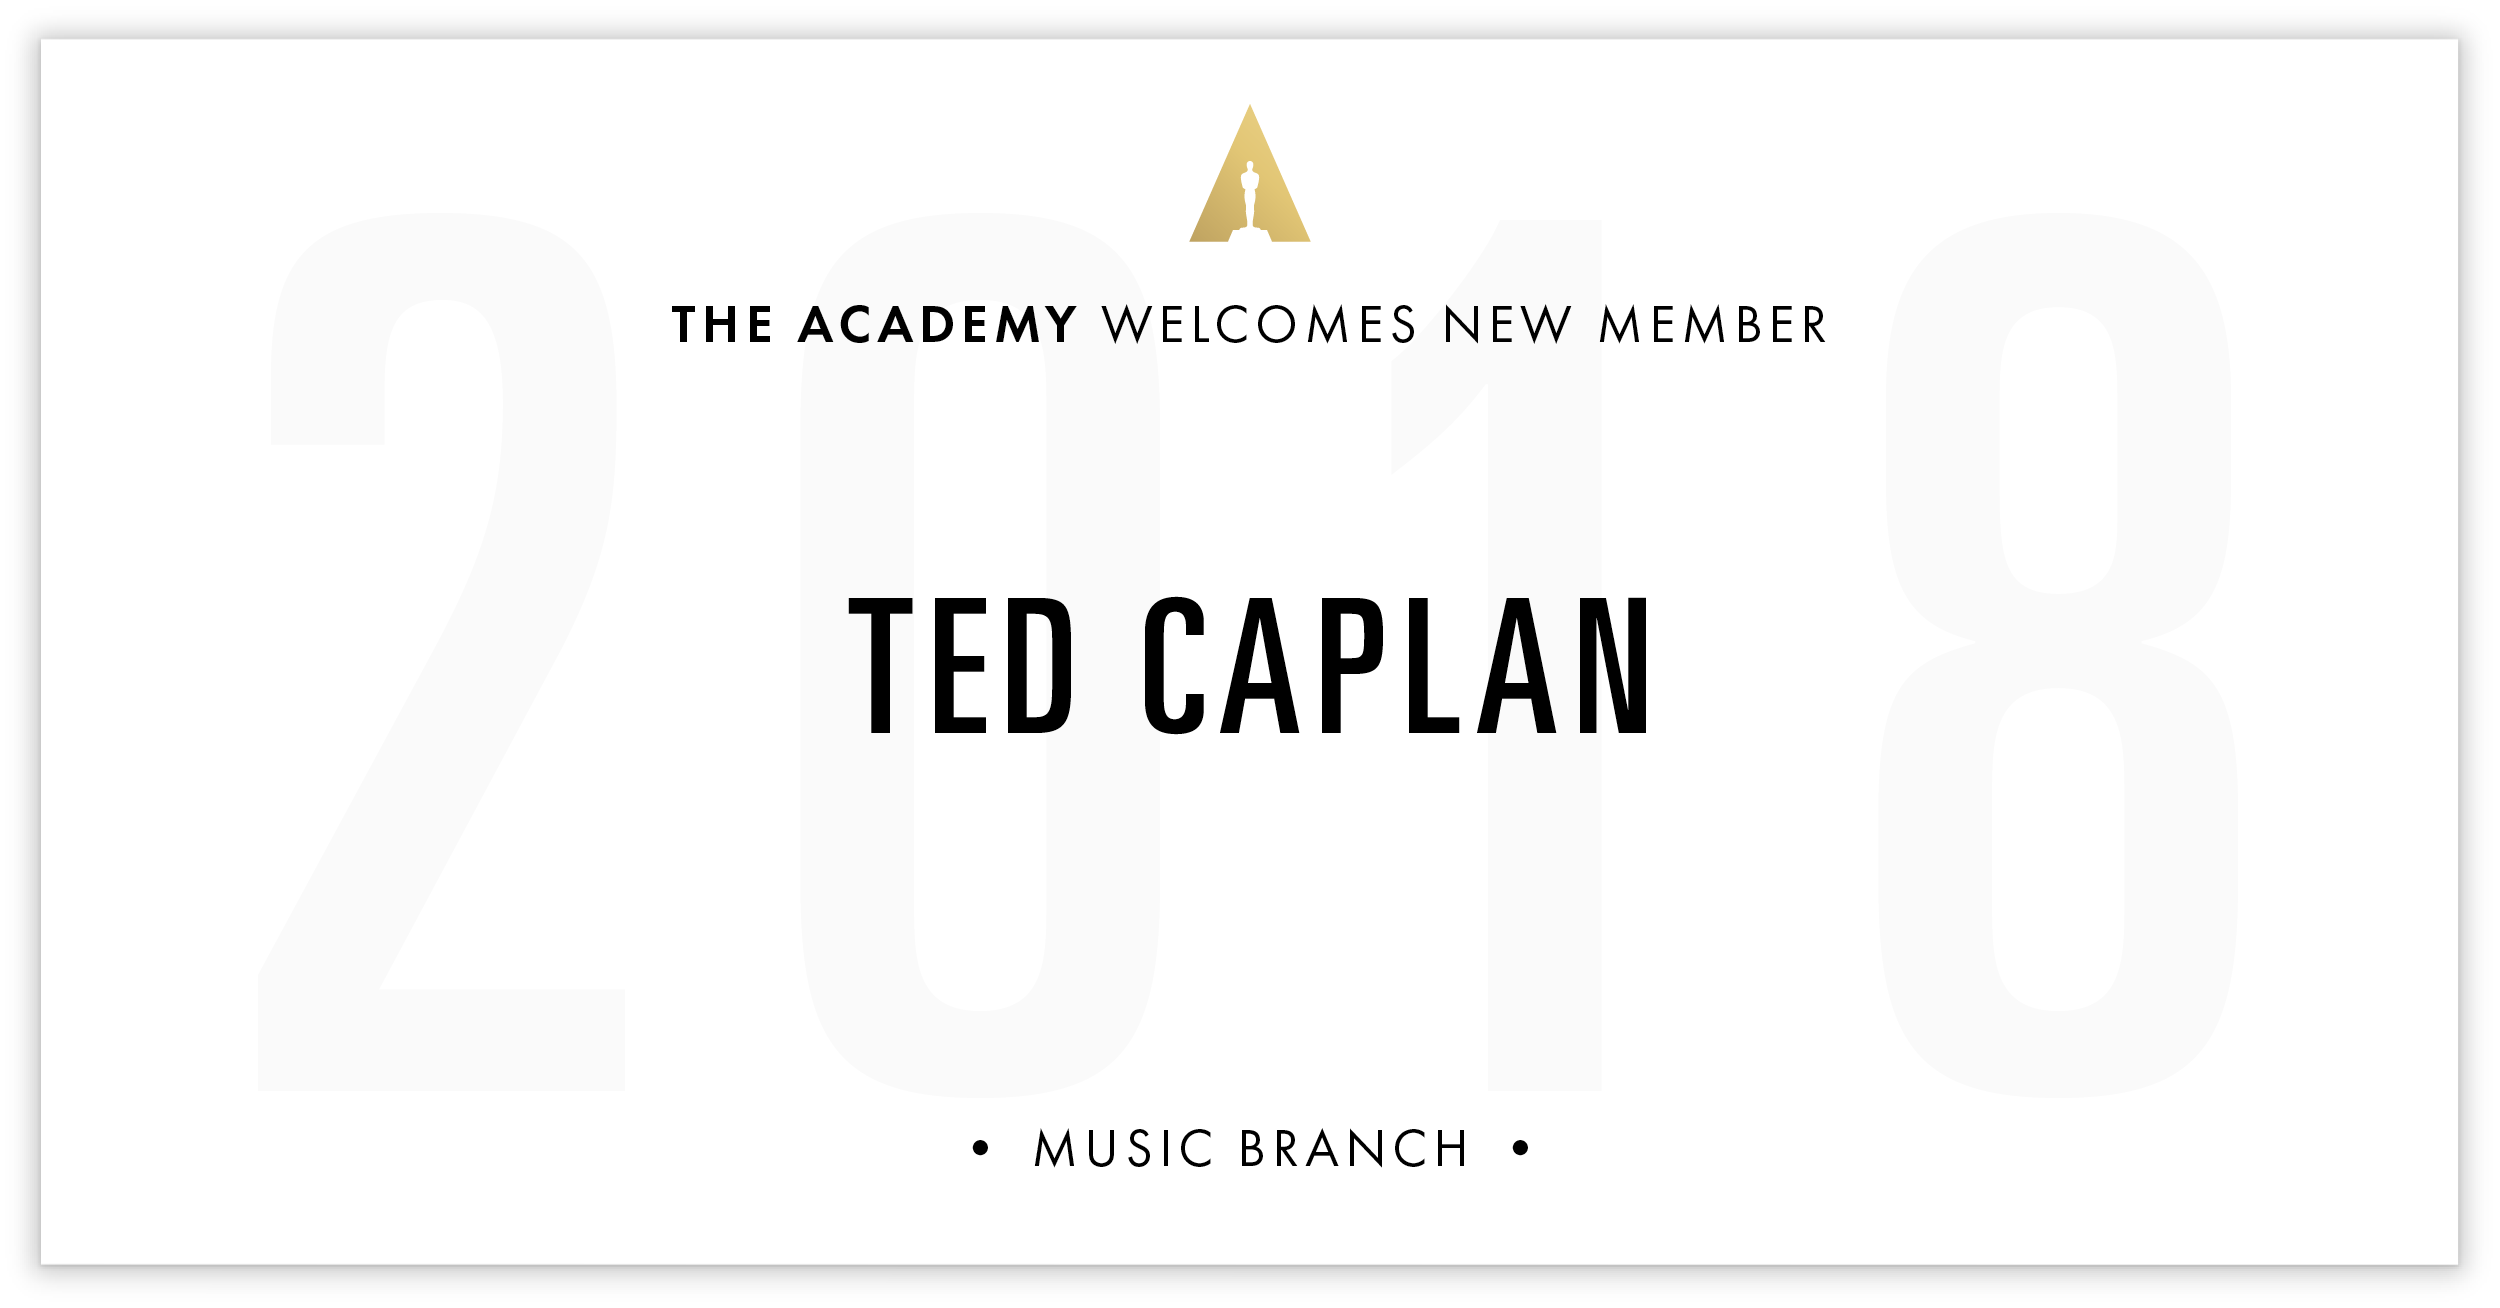 Ted Caplan is invited!